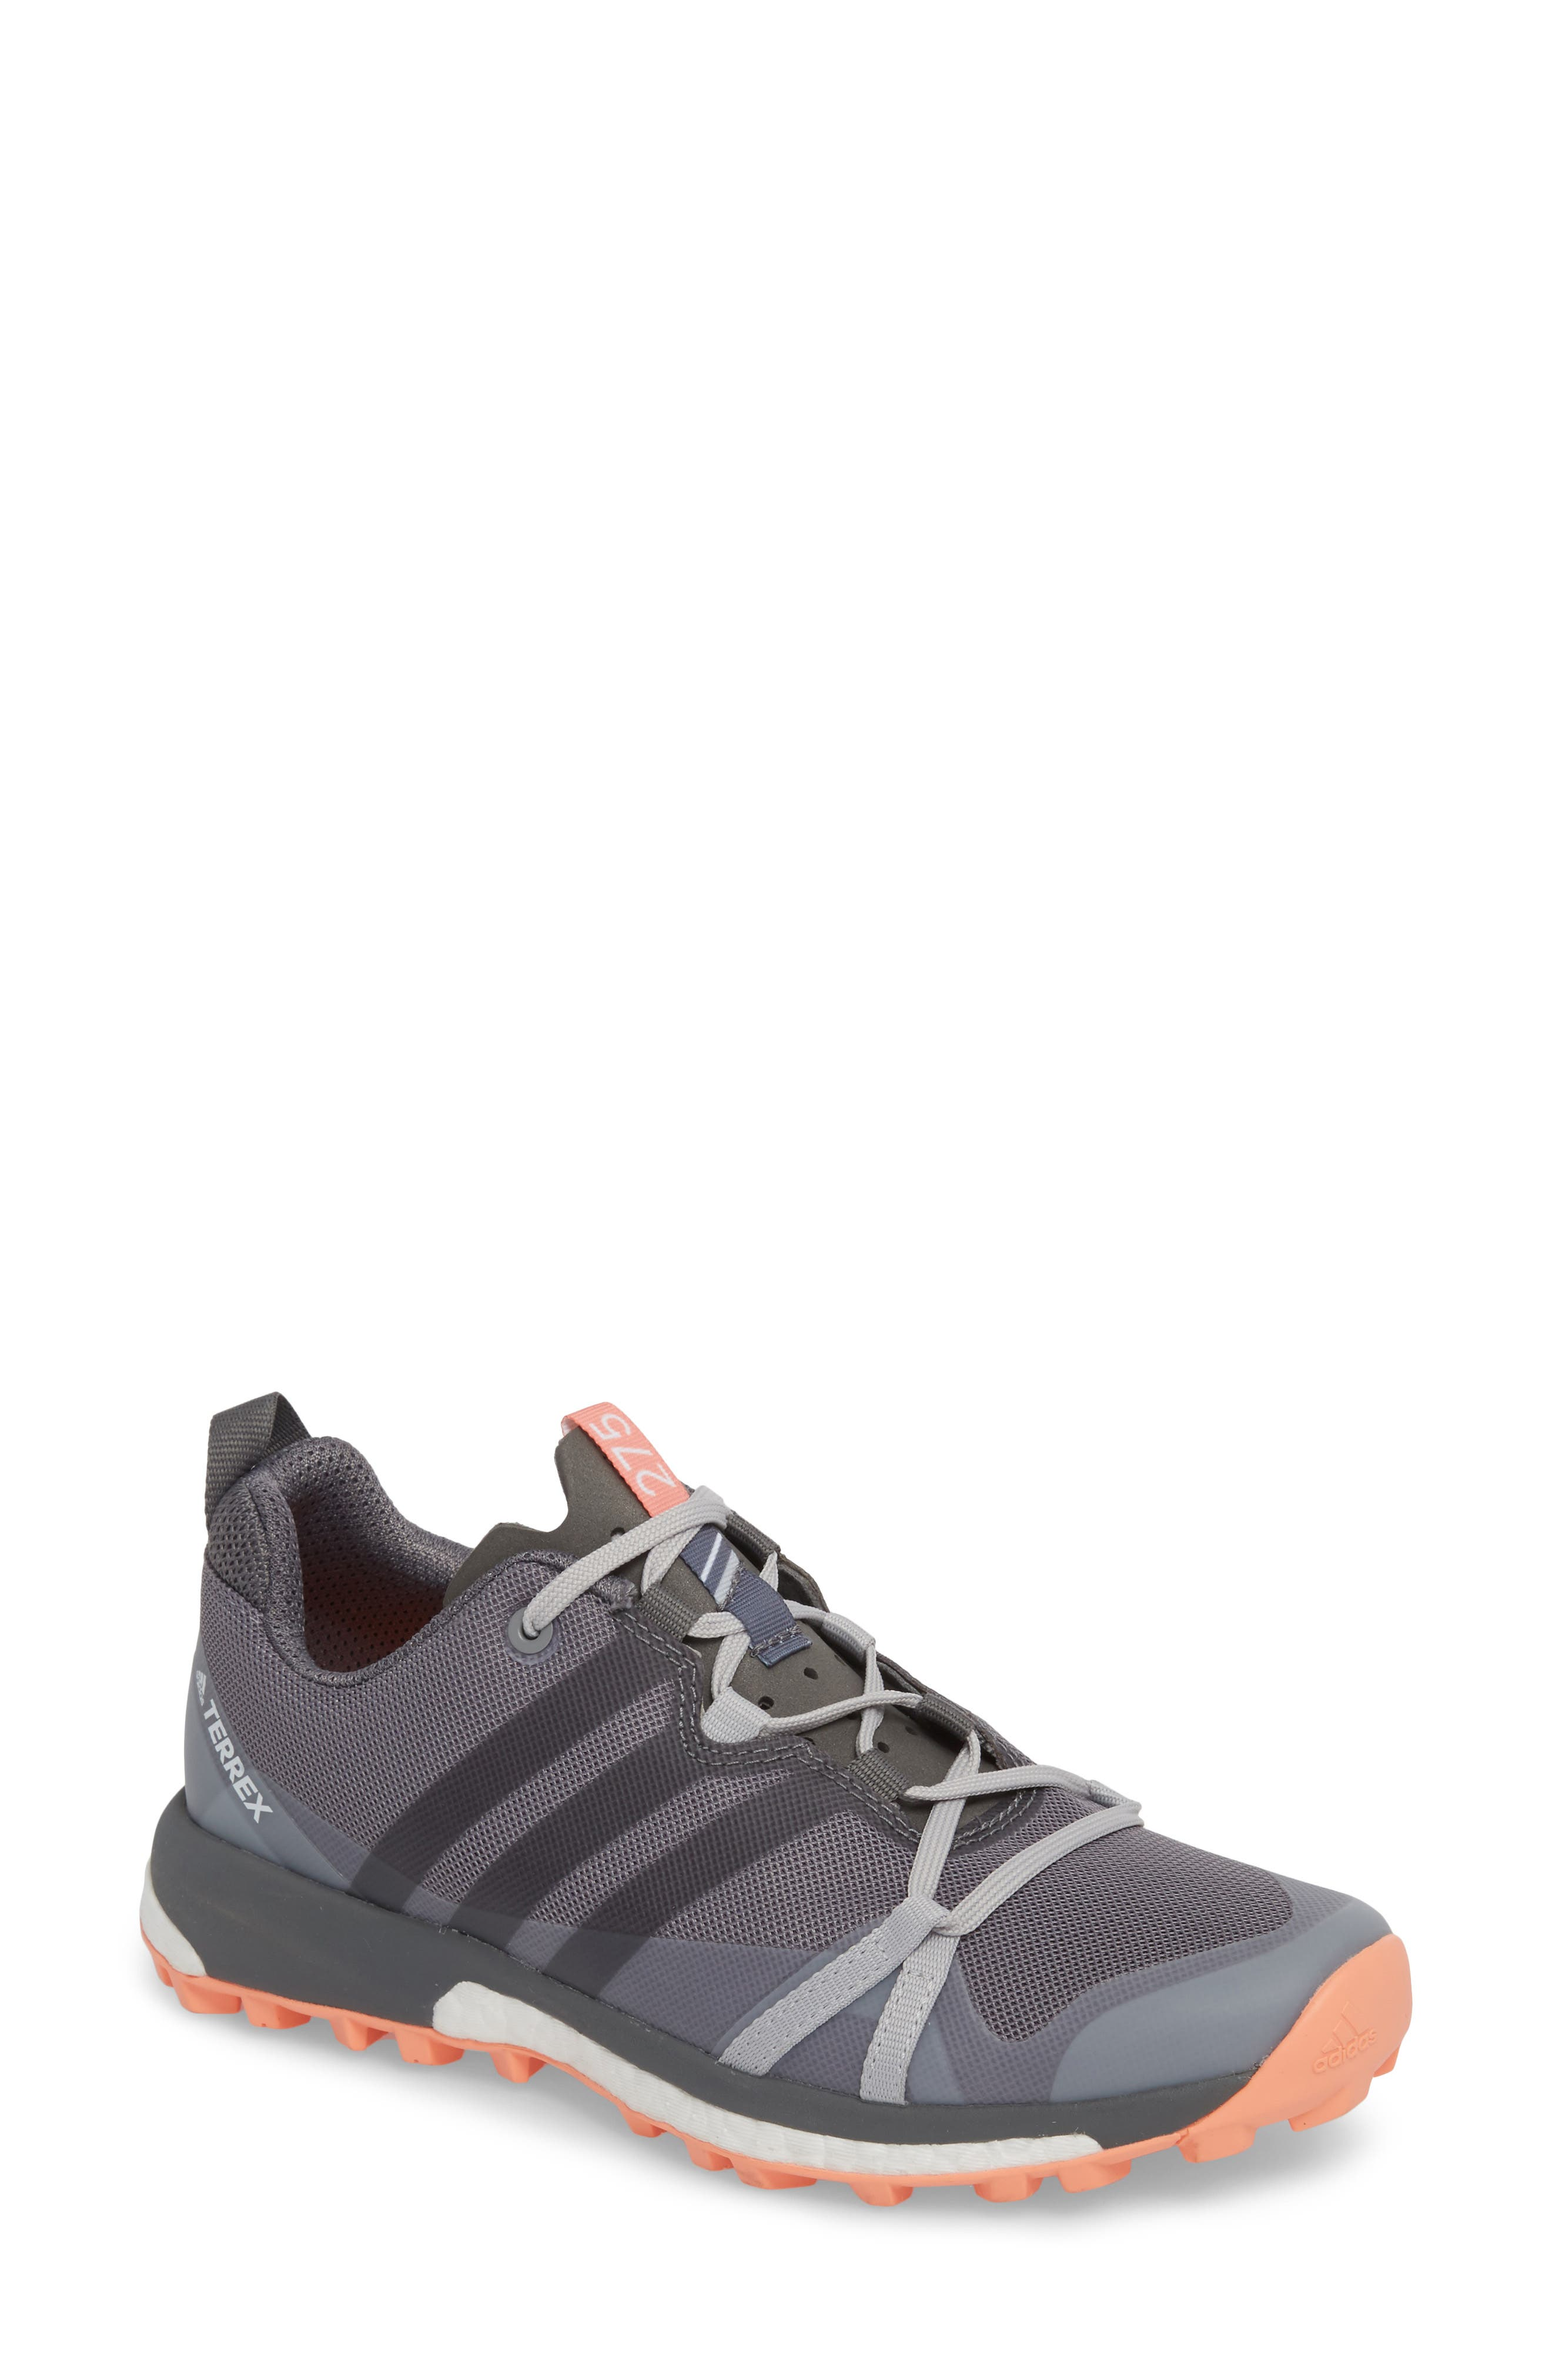 Terrex Agravic Trail Running Shoe,                             Main thumbnail 1, color,                             Grey Three/ Grey Four/ Coral